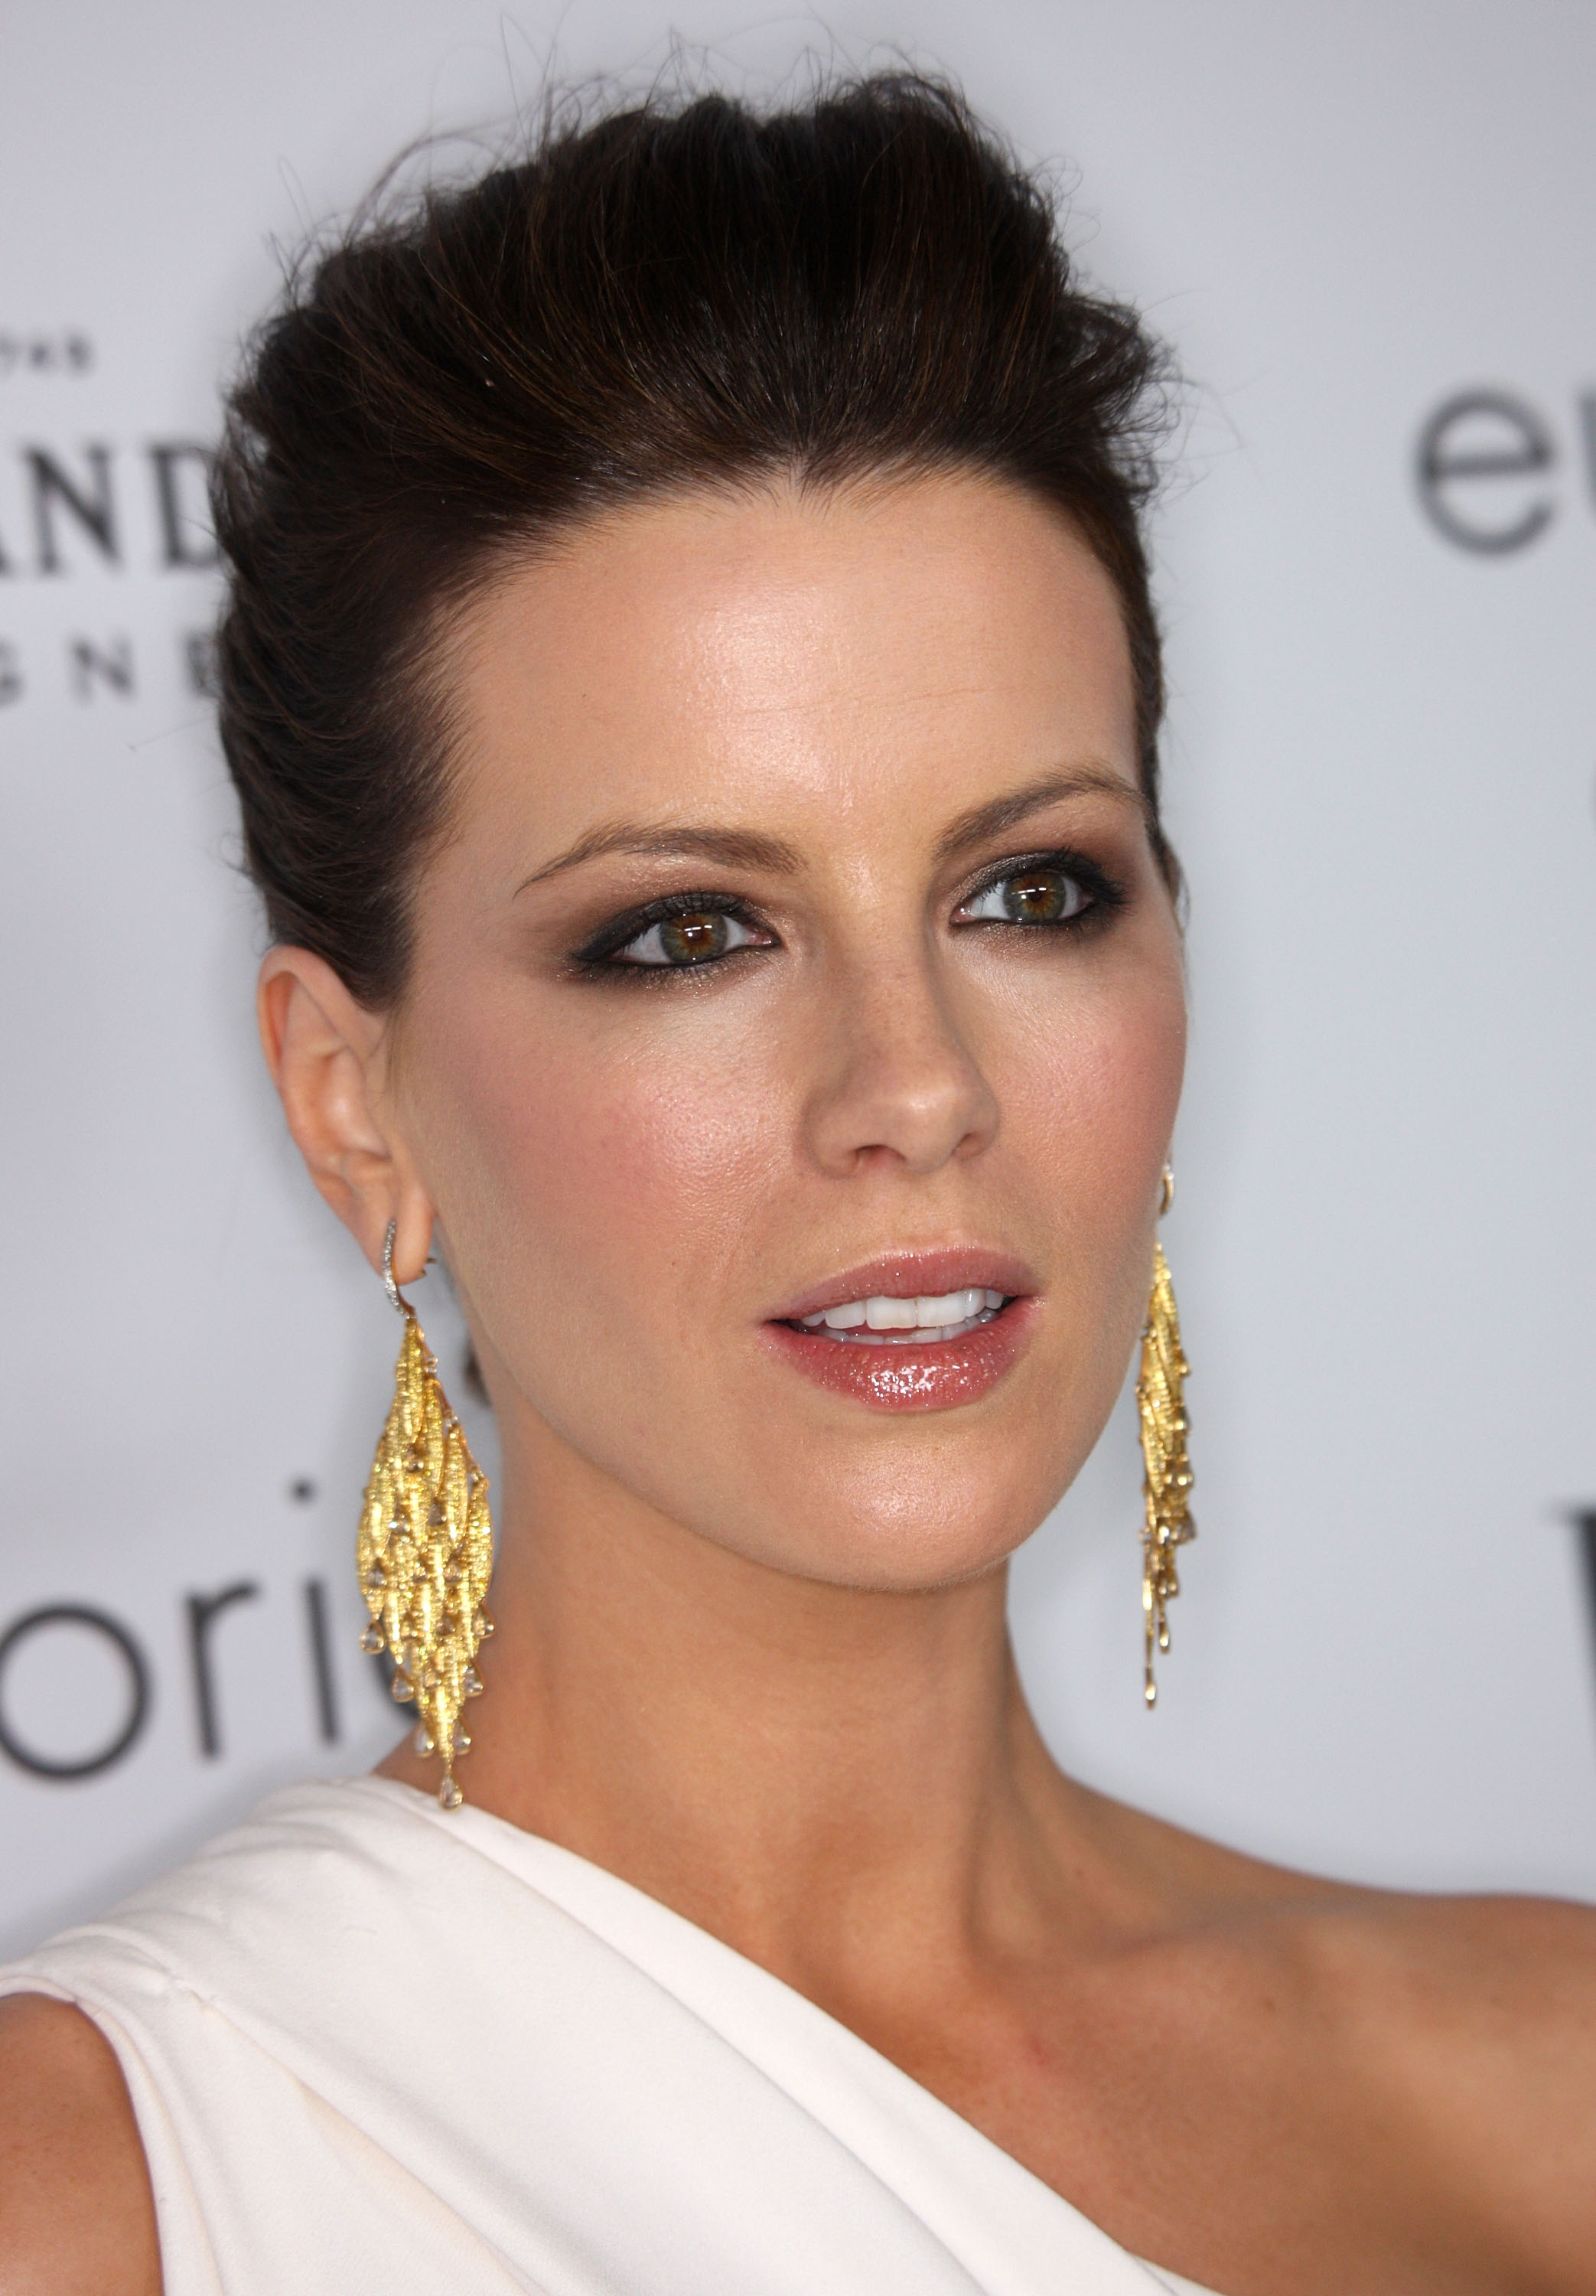 59102_Celebutopia-Kate_Beckinsale-15th_annual_Women_In_Hollywood_Tribute_-05_122_660lo.jpg